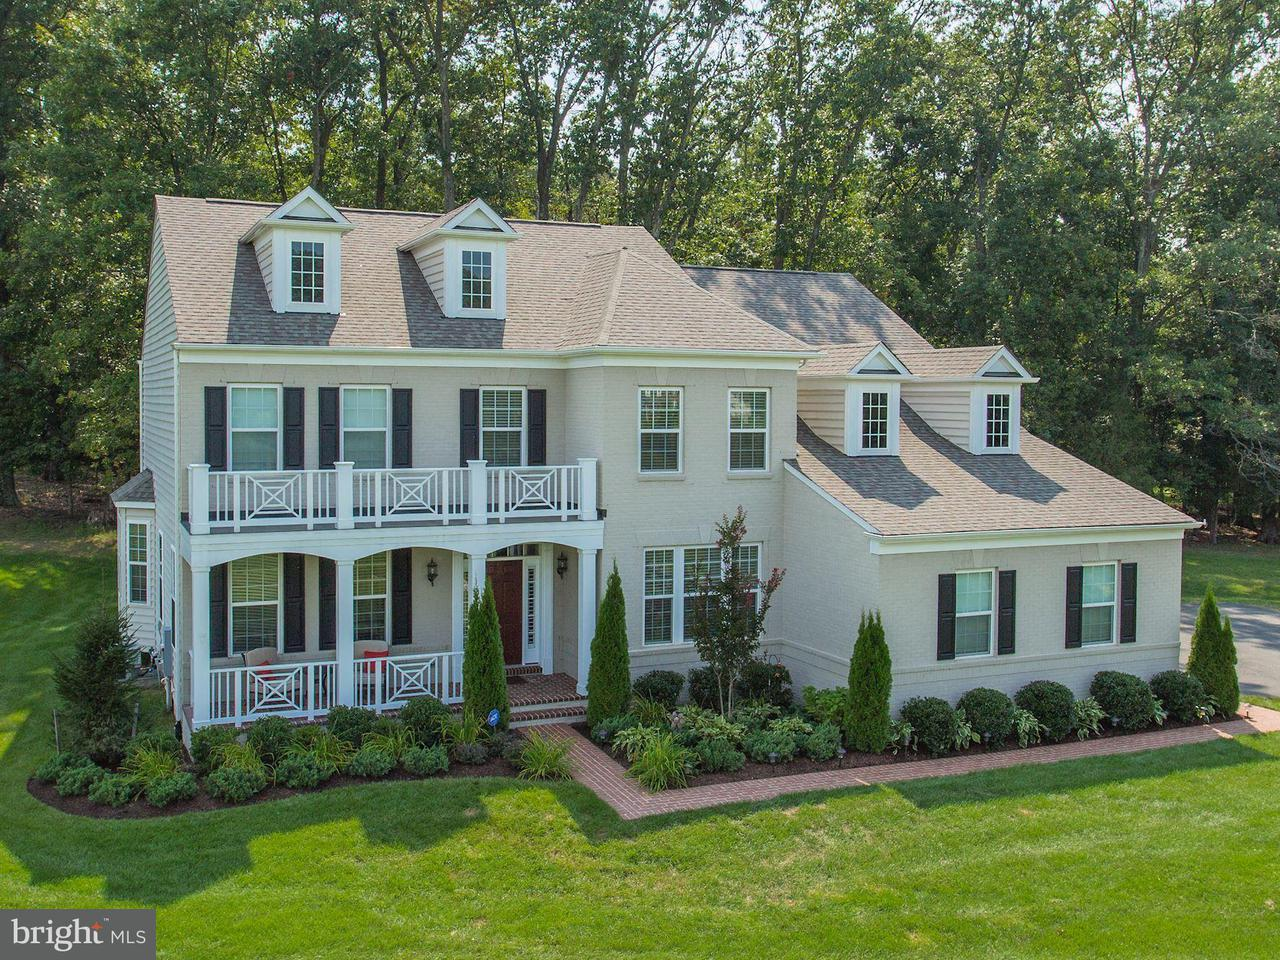 Single Family Home for Sale at 40775 GREYHOUSE Place 40775 GREYHOUSE Place Leesburg, Virginia 20175 United States